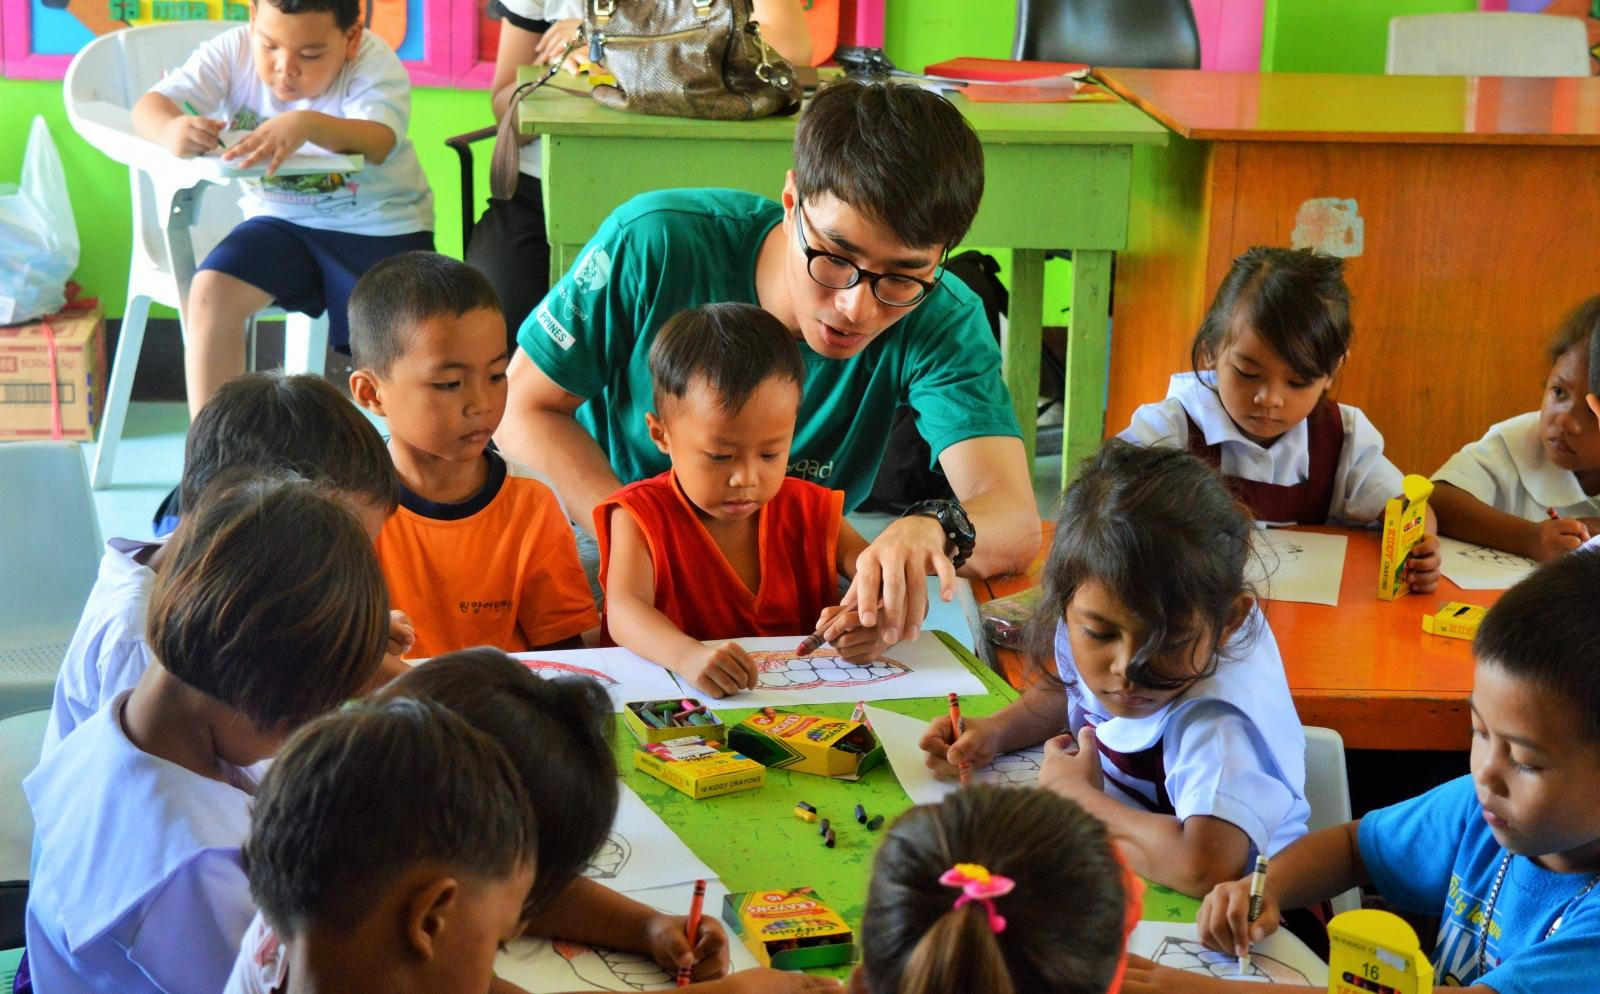 A volunteer in the Philippines helps a child in the classroom as part of his service learning trip abroad